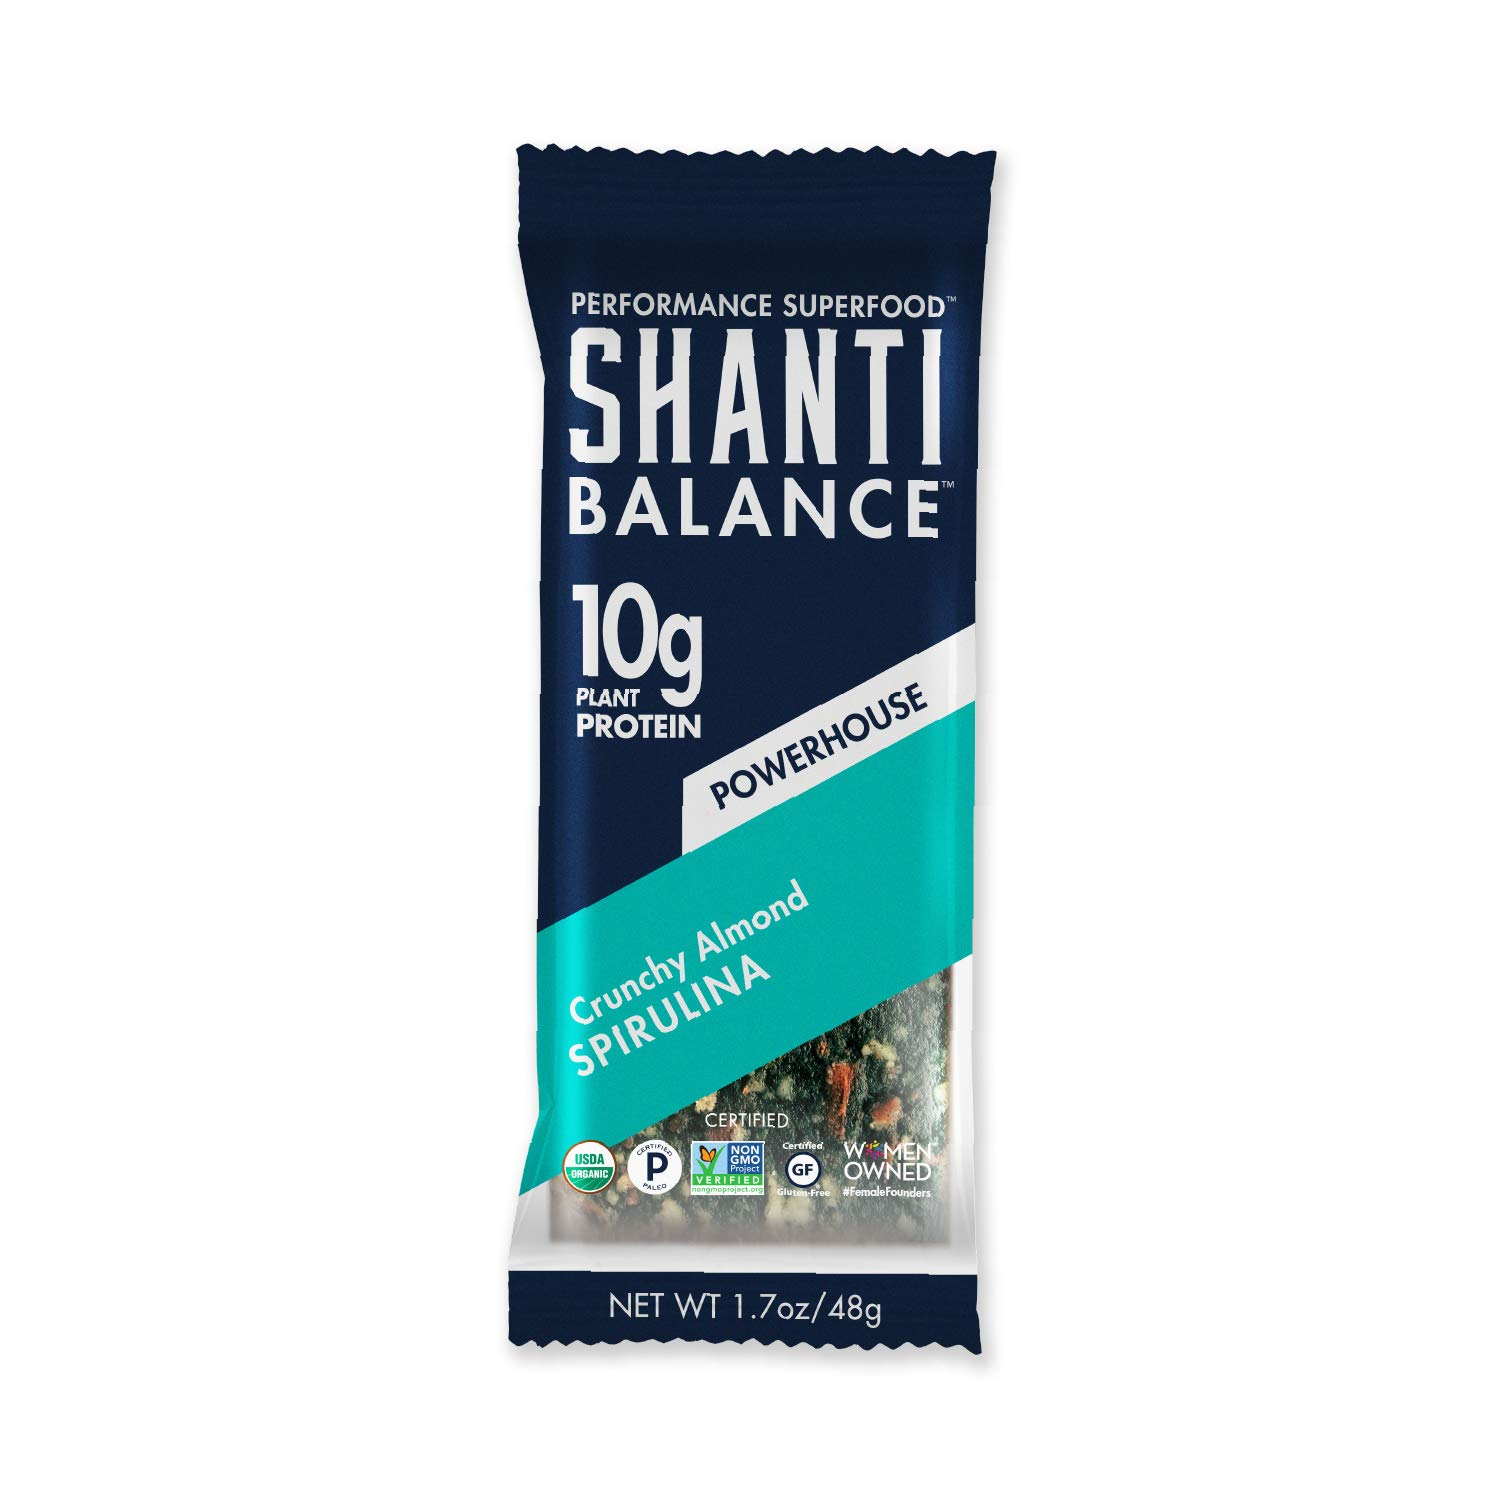 SHANTI BAR | 10G Plant Based Protein | Performance Superfood | Vegan Sport Protein Bar | Paleo, Certified Organic, Low Glycemic, Gluten Free, Raw Healthy Snack with No Refined Sugars | POWERHOUSE Crunchy Almond Spirulina | 6 Count, 1.7 oz Bars